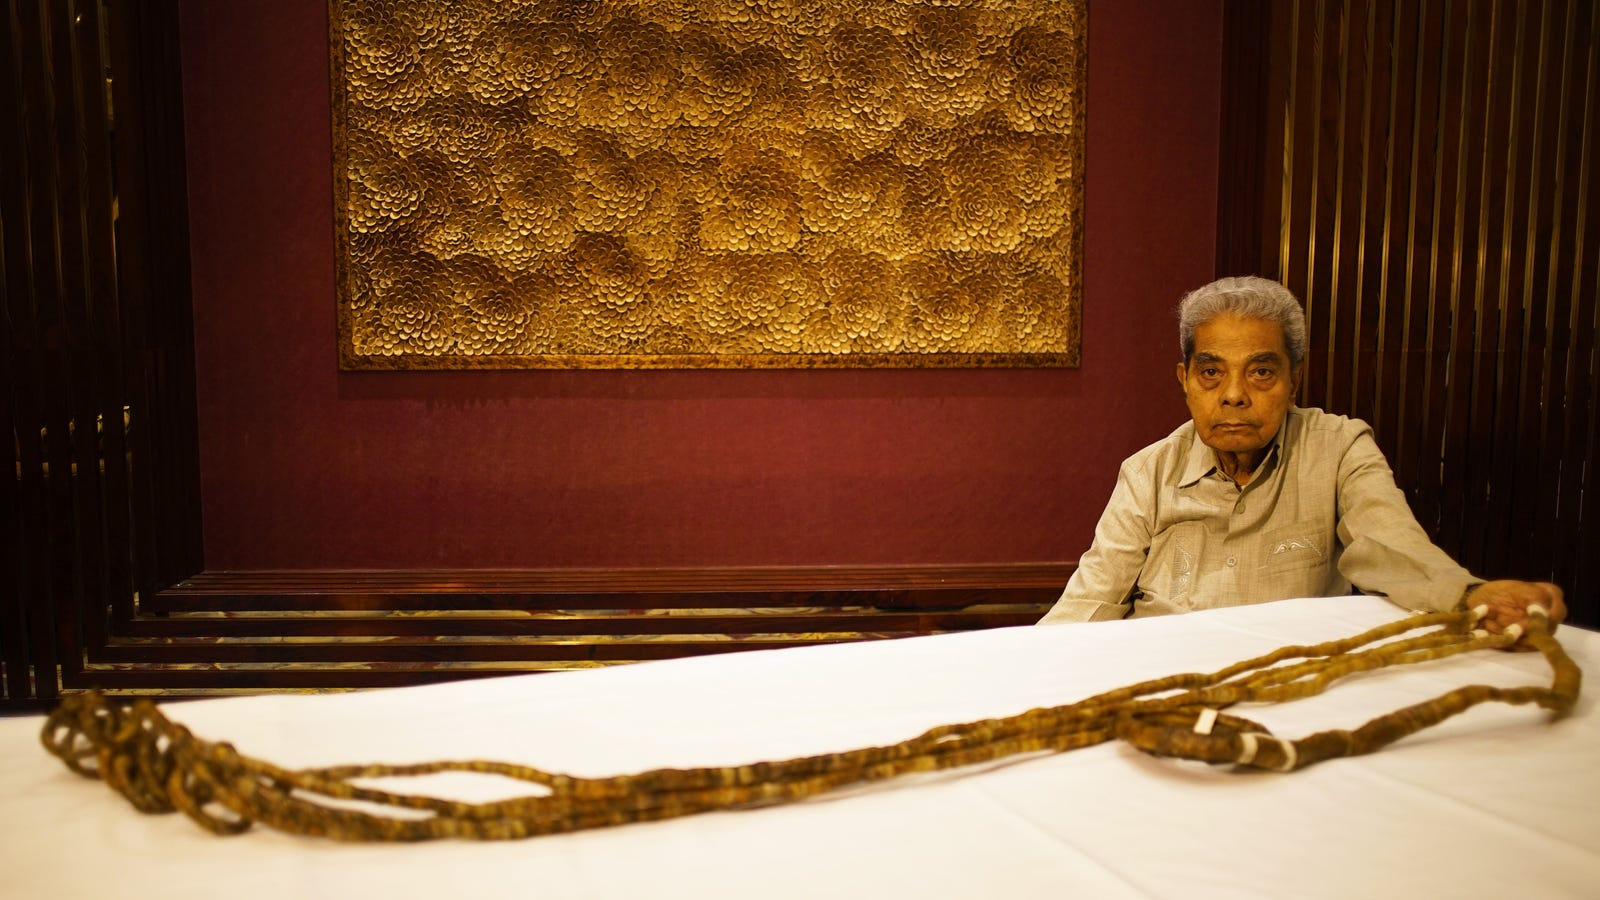 After Growing World's Longest Nails Out of Spite, Man Sells 30-Foot Talons for Enough 'to Retire' On